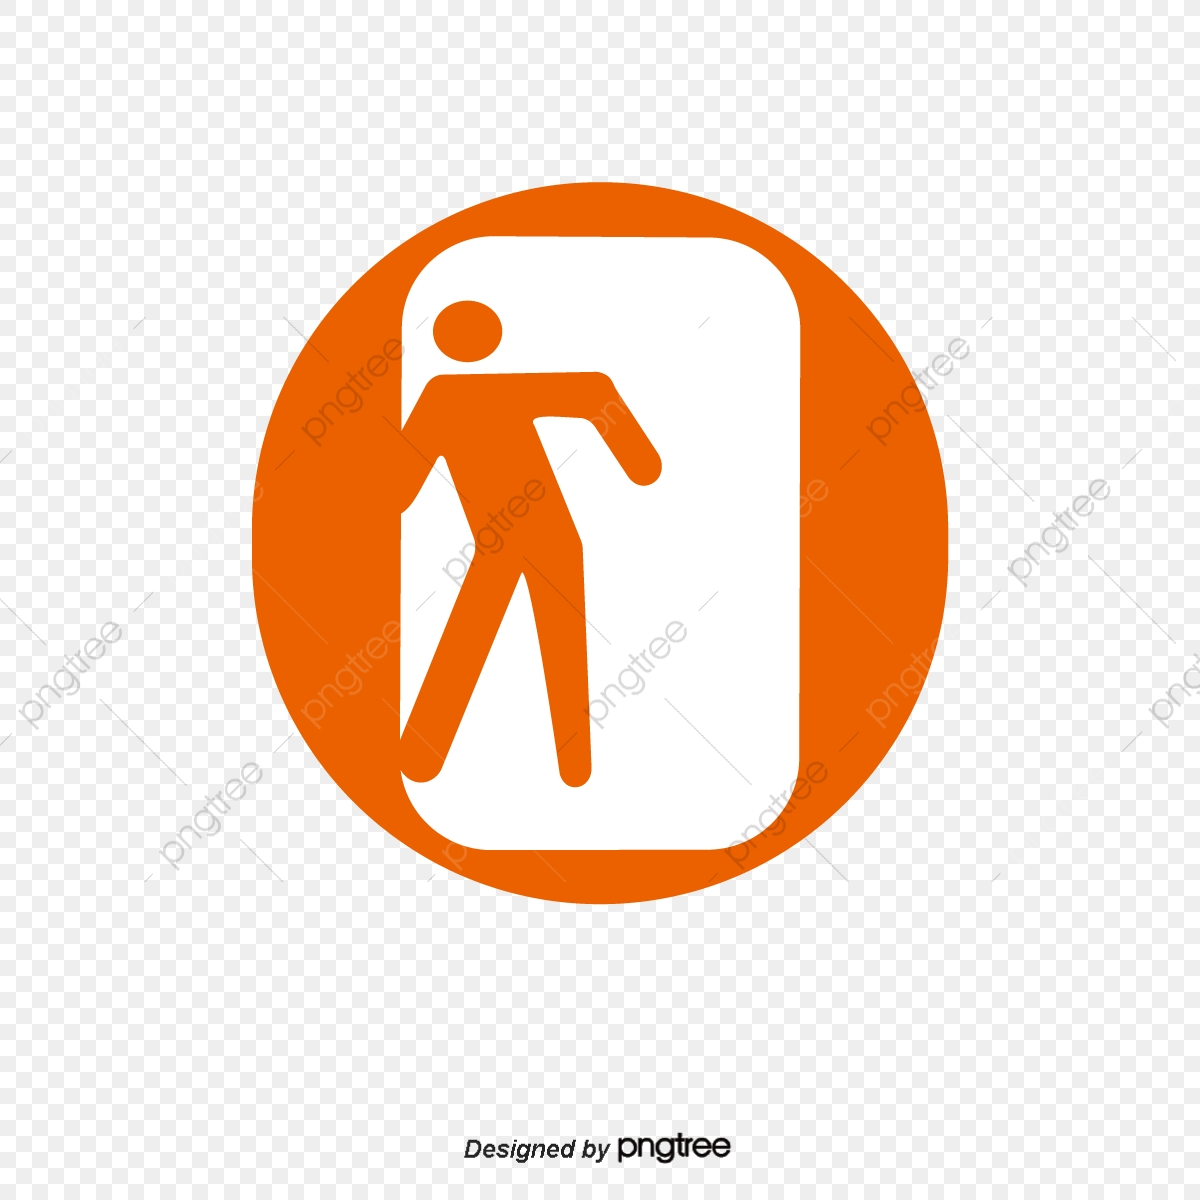 exit button png images vector and psd files free download on pngtree https pngtree com freepng hand painted 11 11 exit button exit 3893075 html